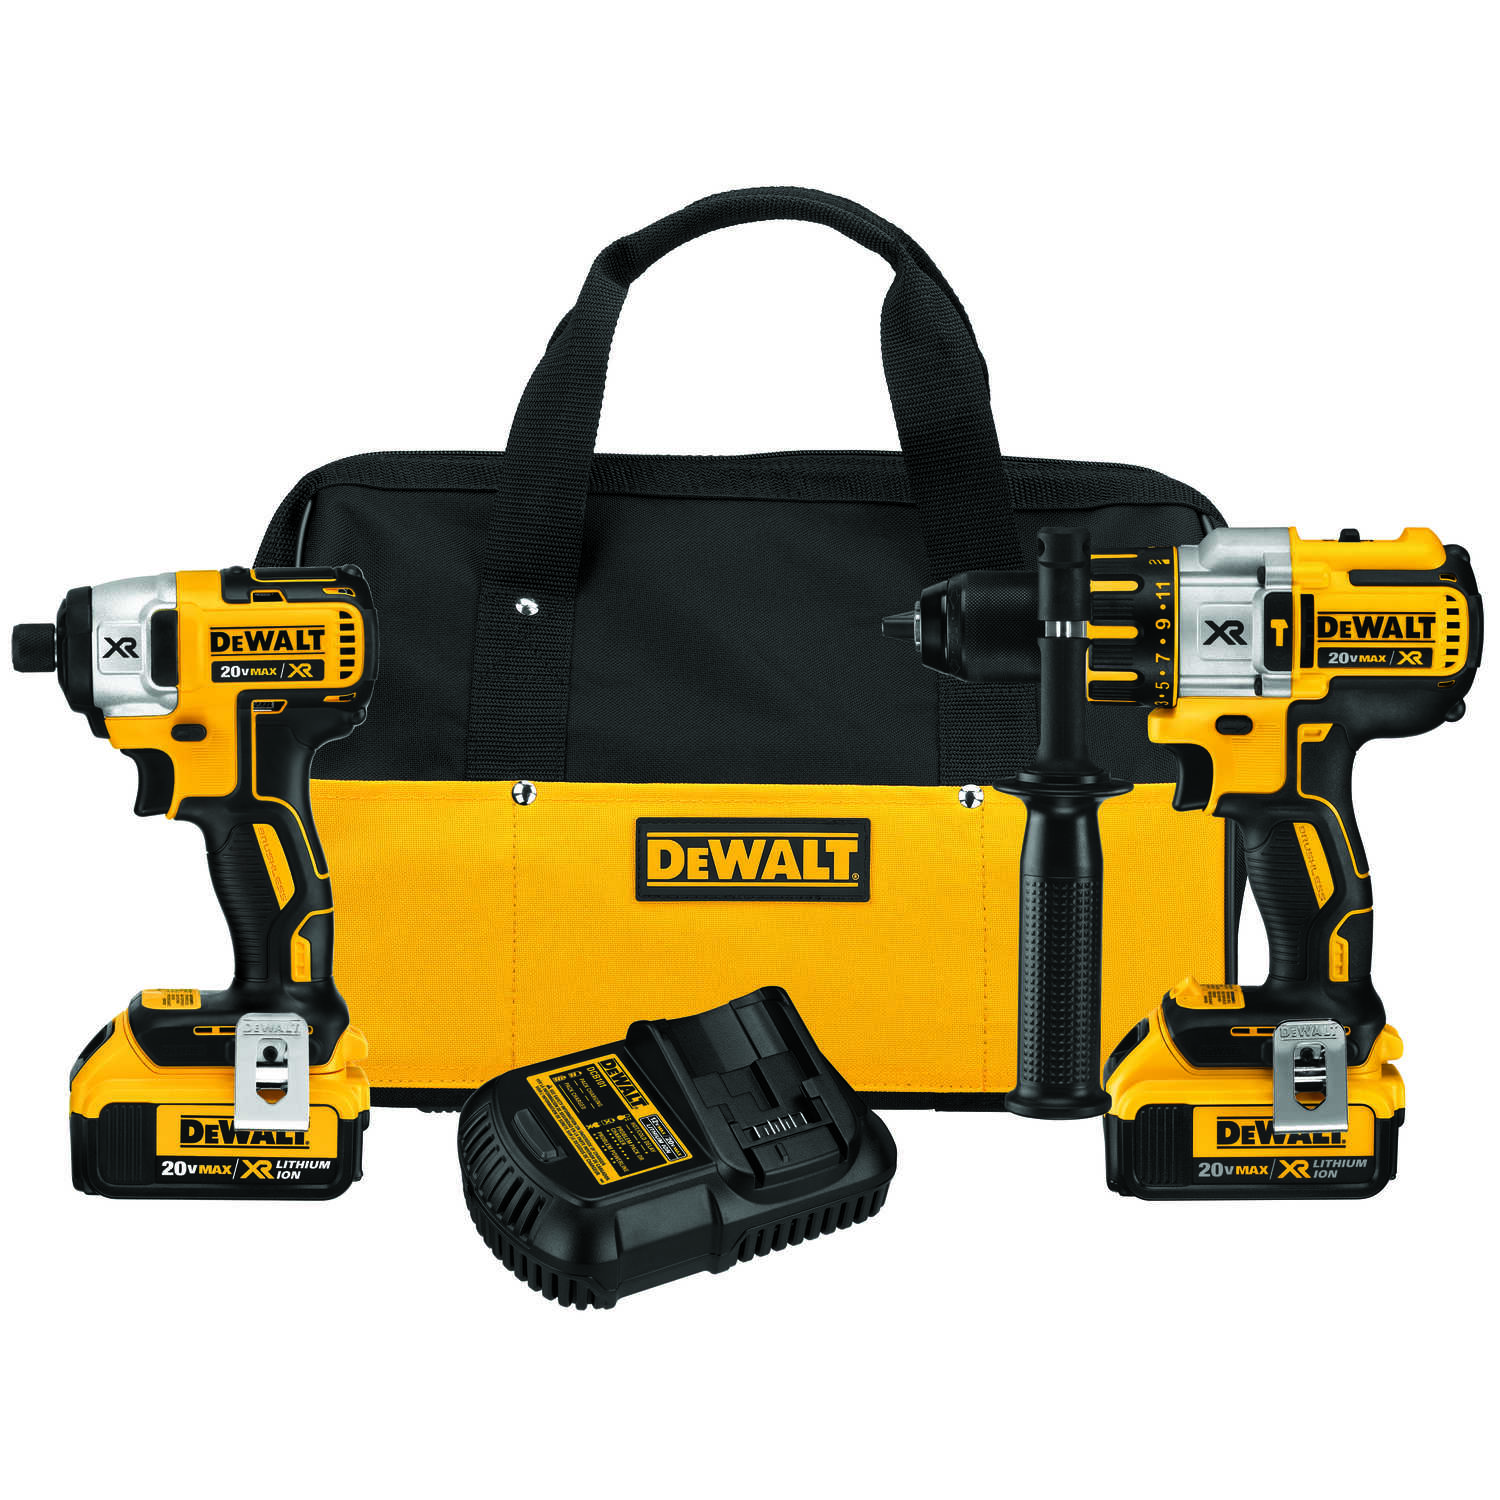 DeWalt  Cordless  Brushless 2 tools Combo Kit  20 volts